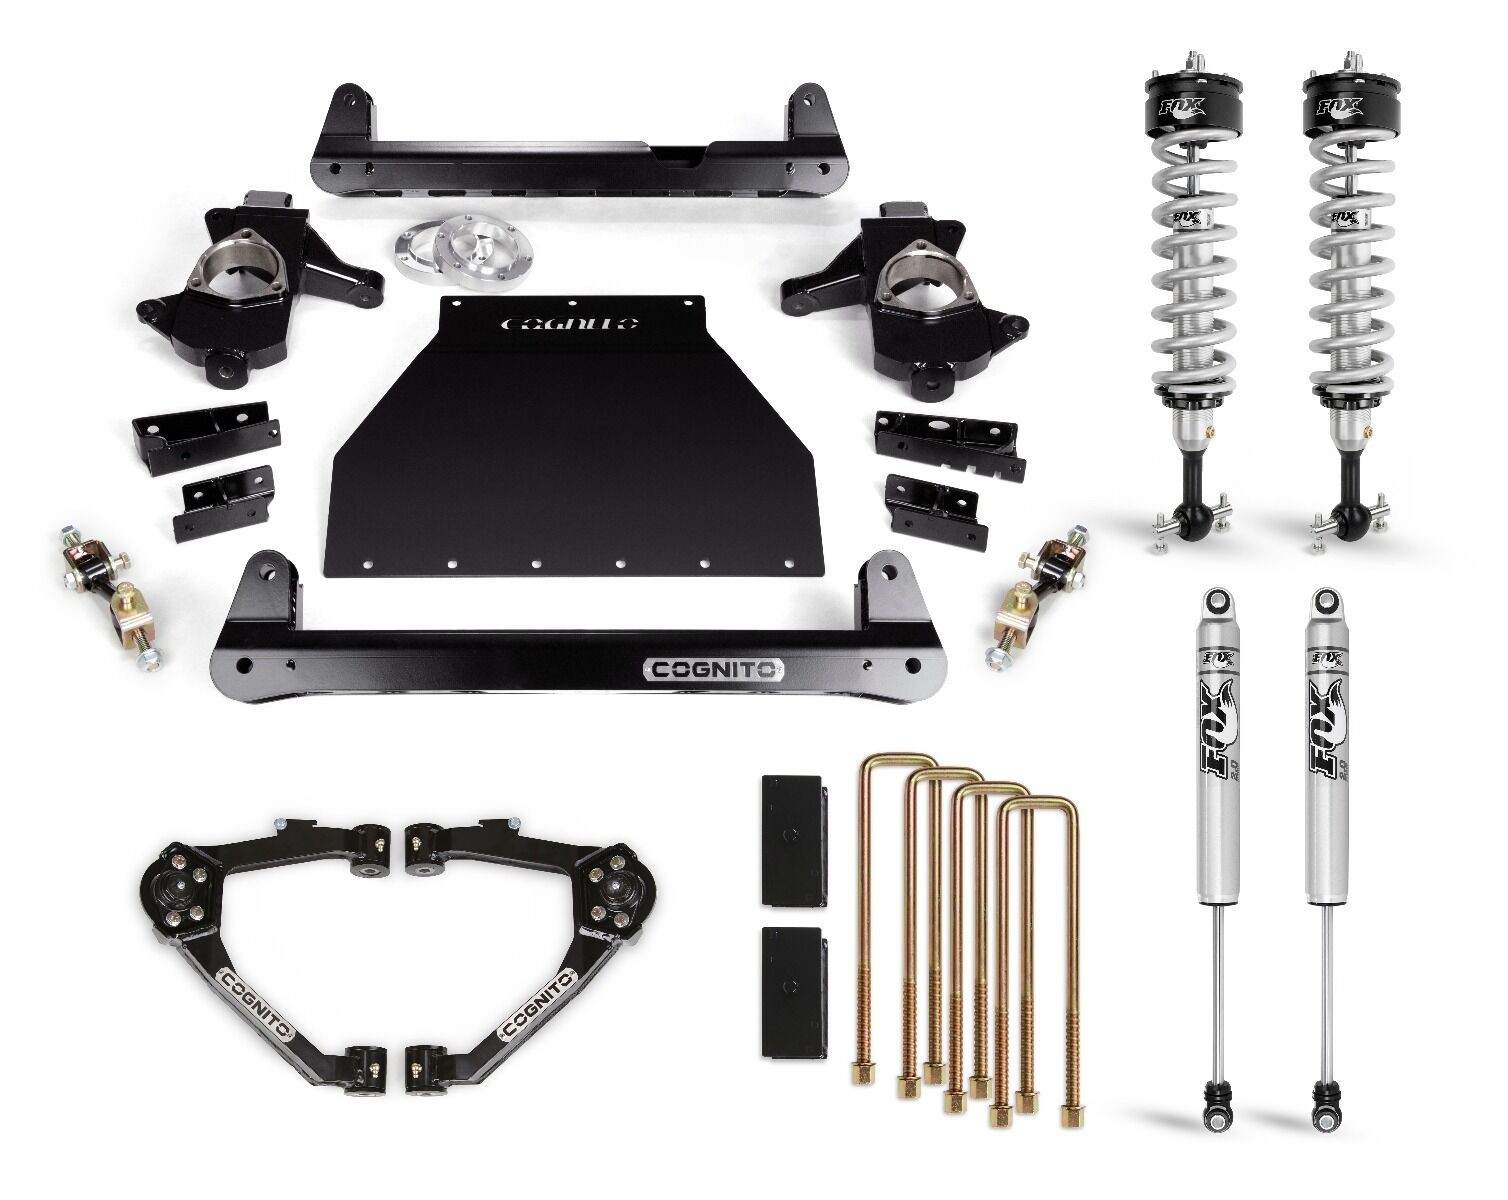 "Cognito 4"" Performance Lift Kit With Fox PS IFP 2.0 Shocks"